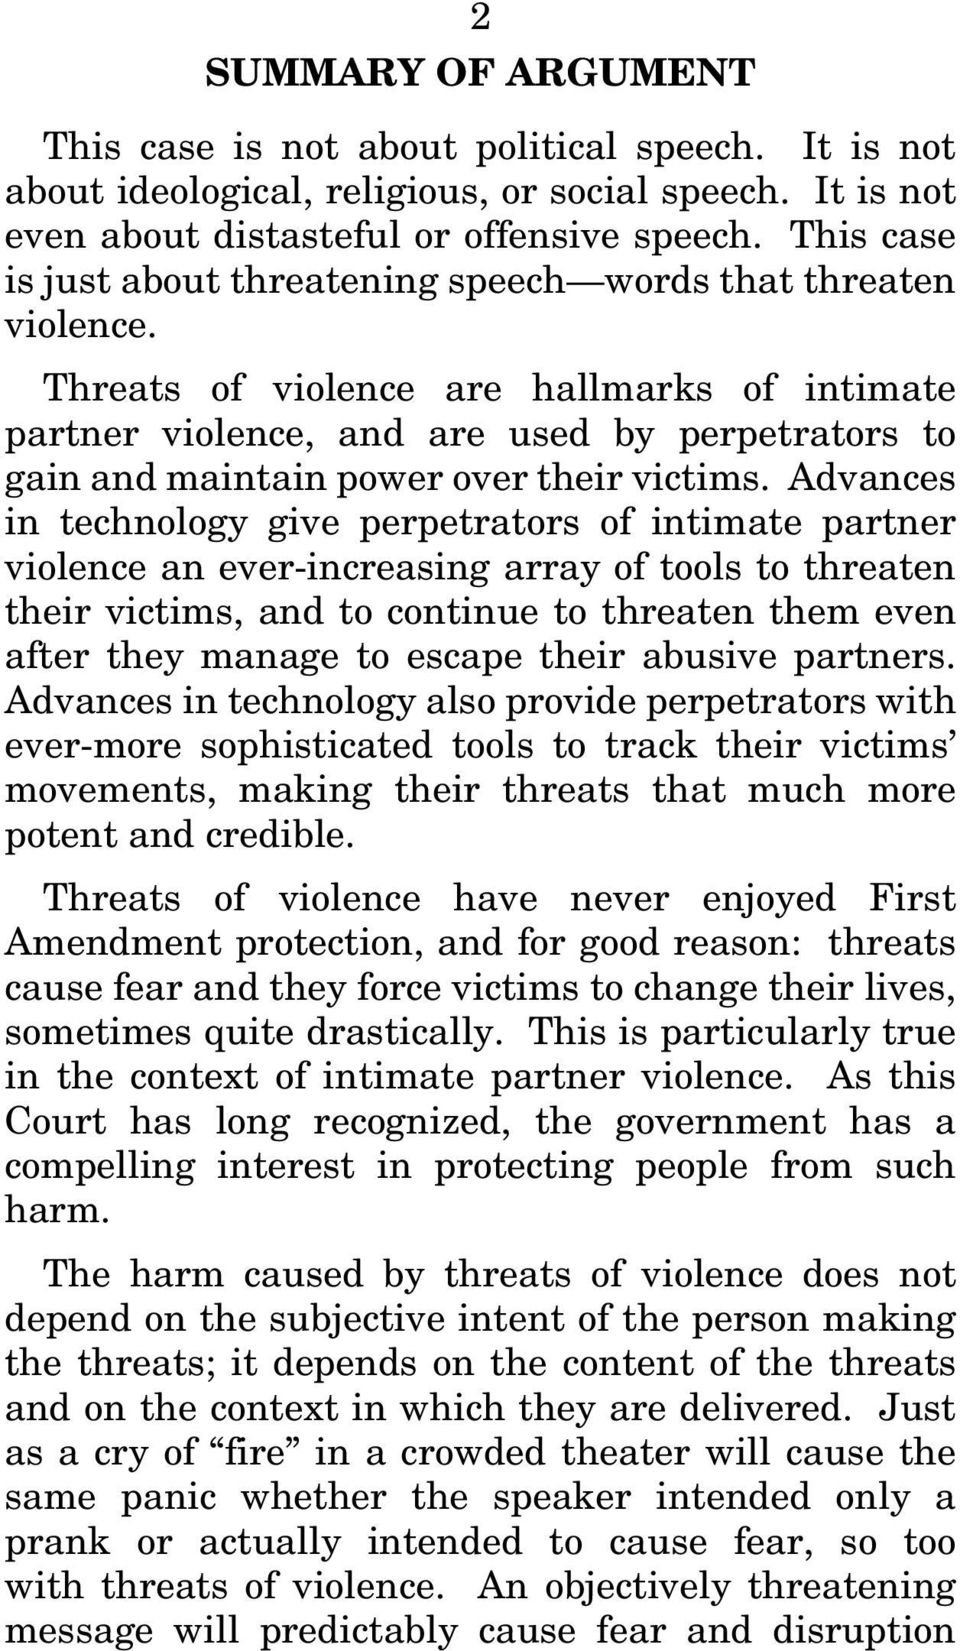 Threats of violence are hallmarks of intimate partner violence, and are used by perpetrators to gain and maintain power over their victims.